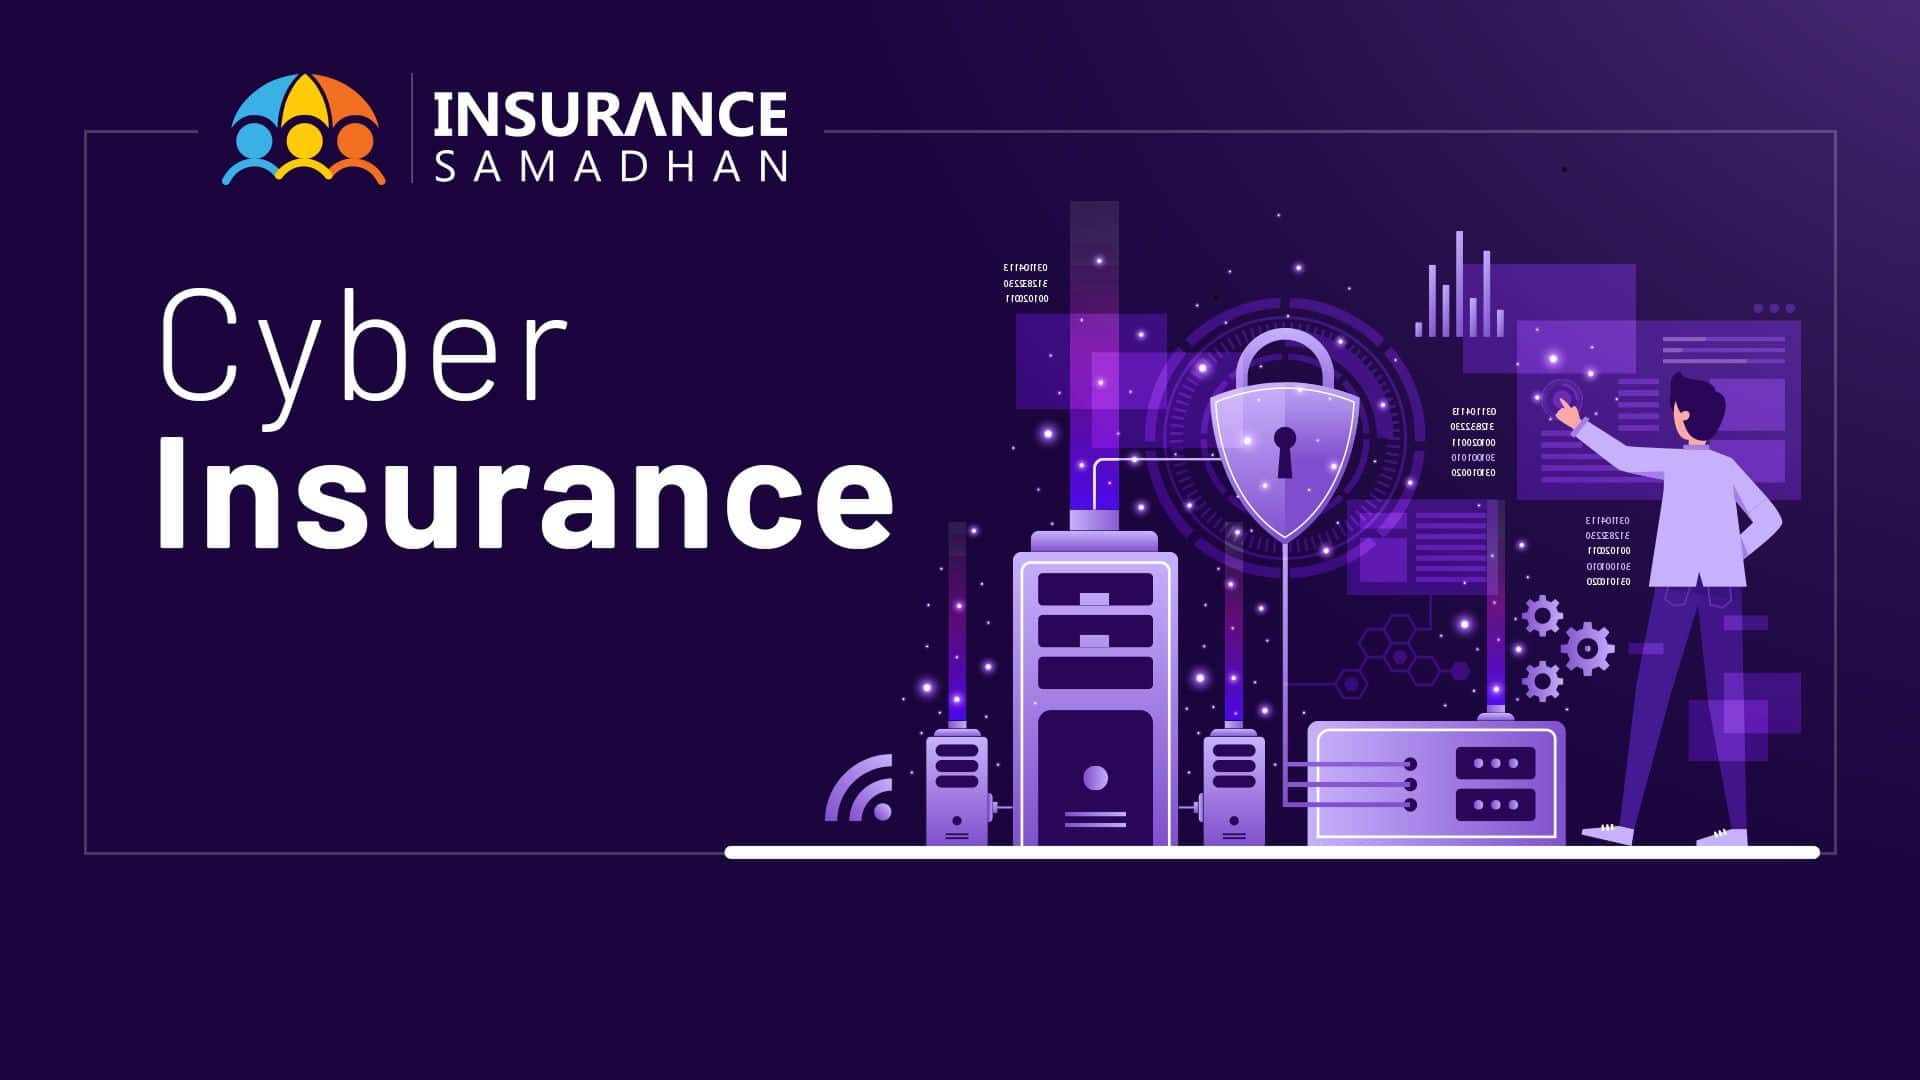 Cyber Insurance: Covid-19 Impact on Cyber Policies in India